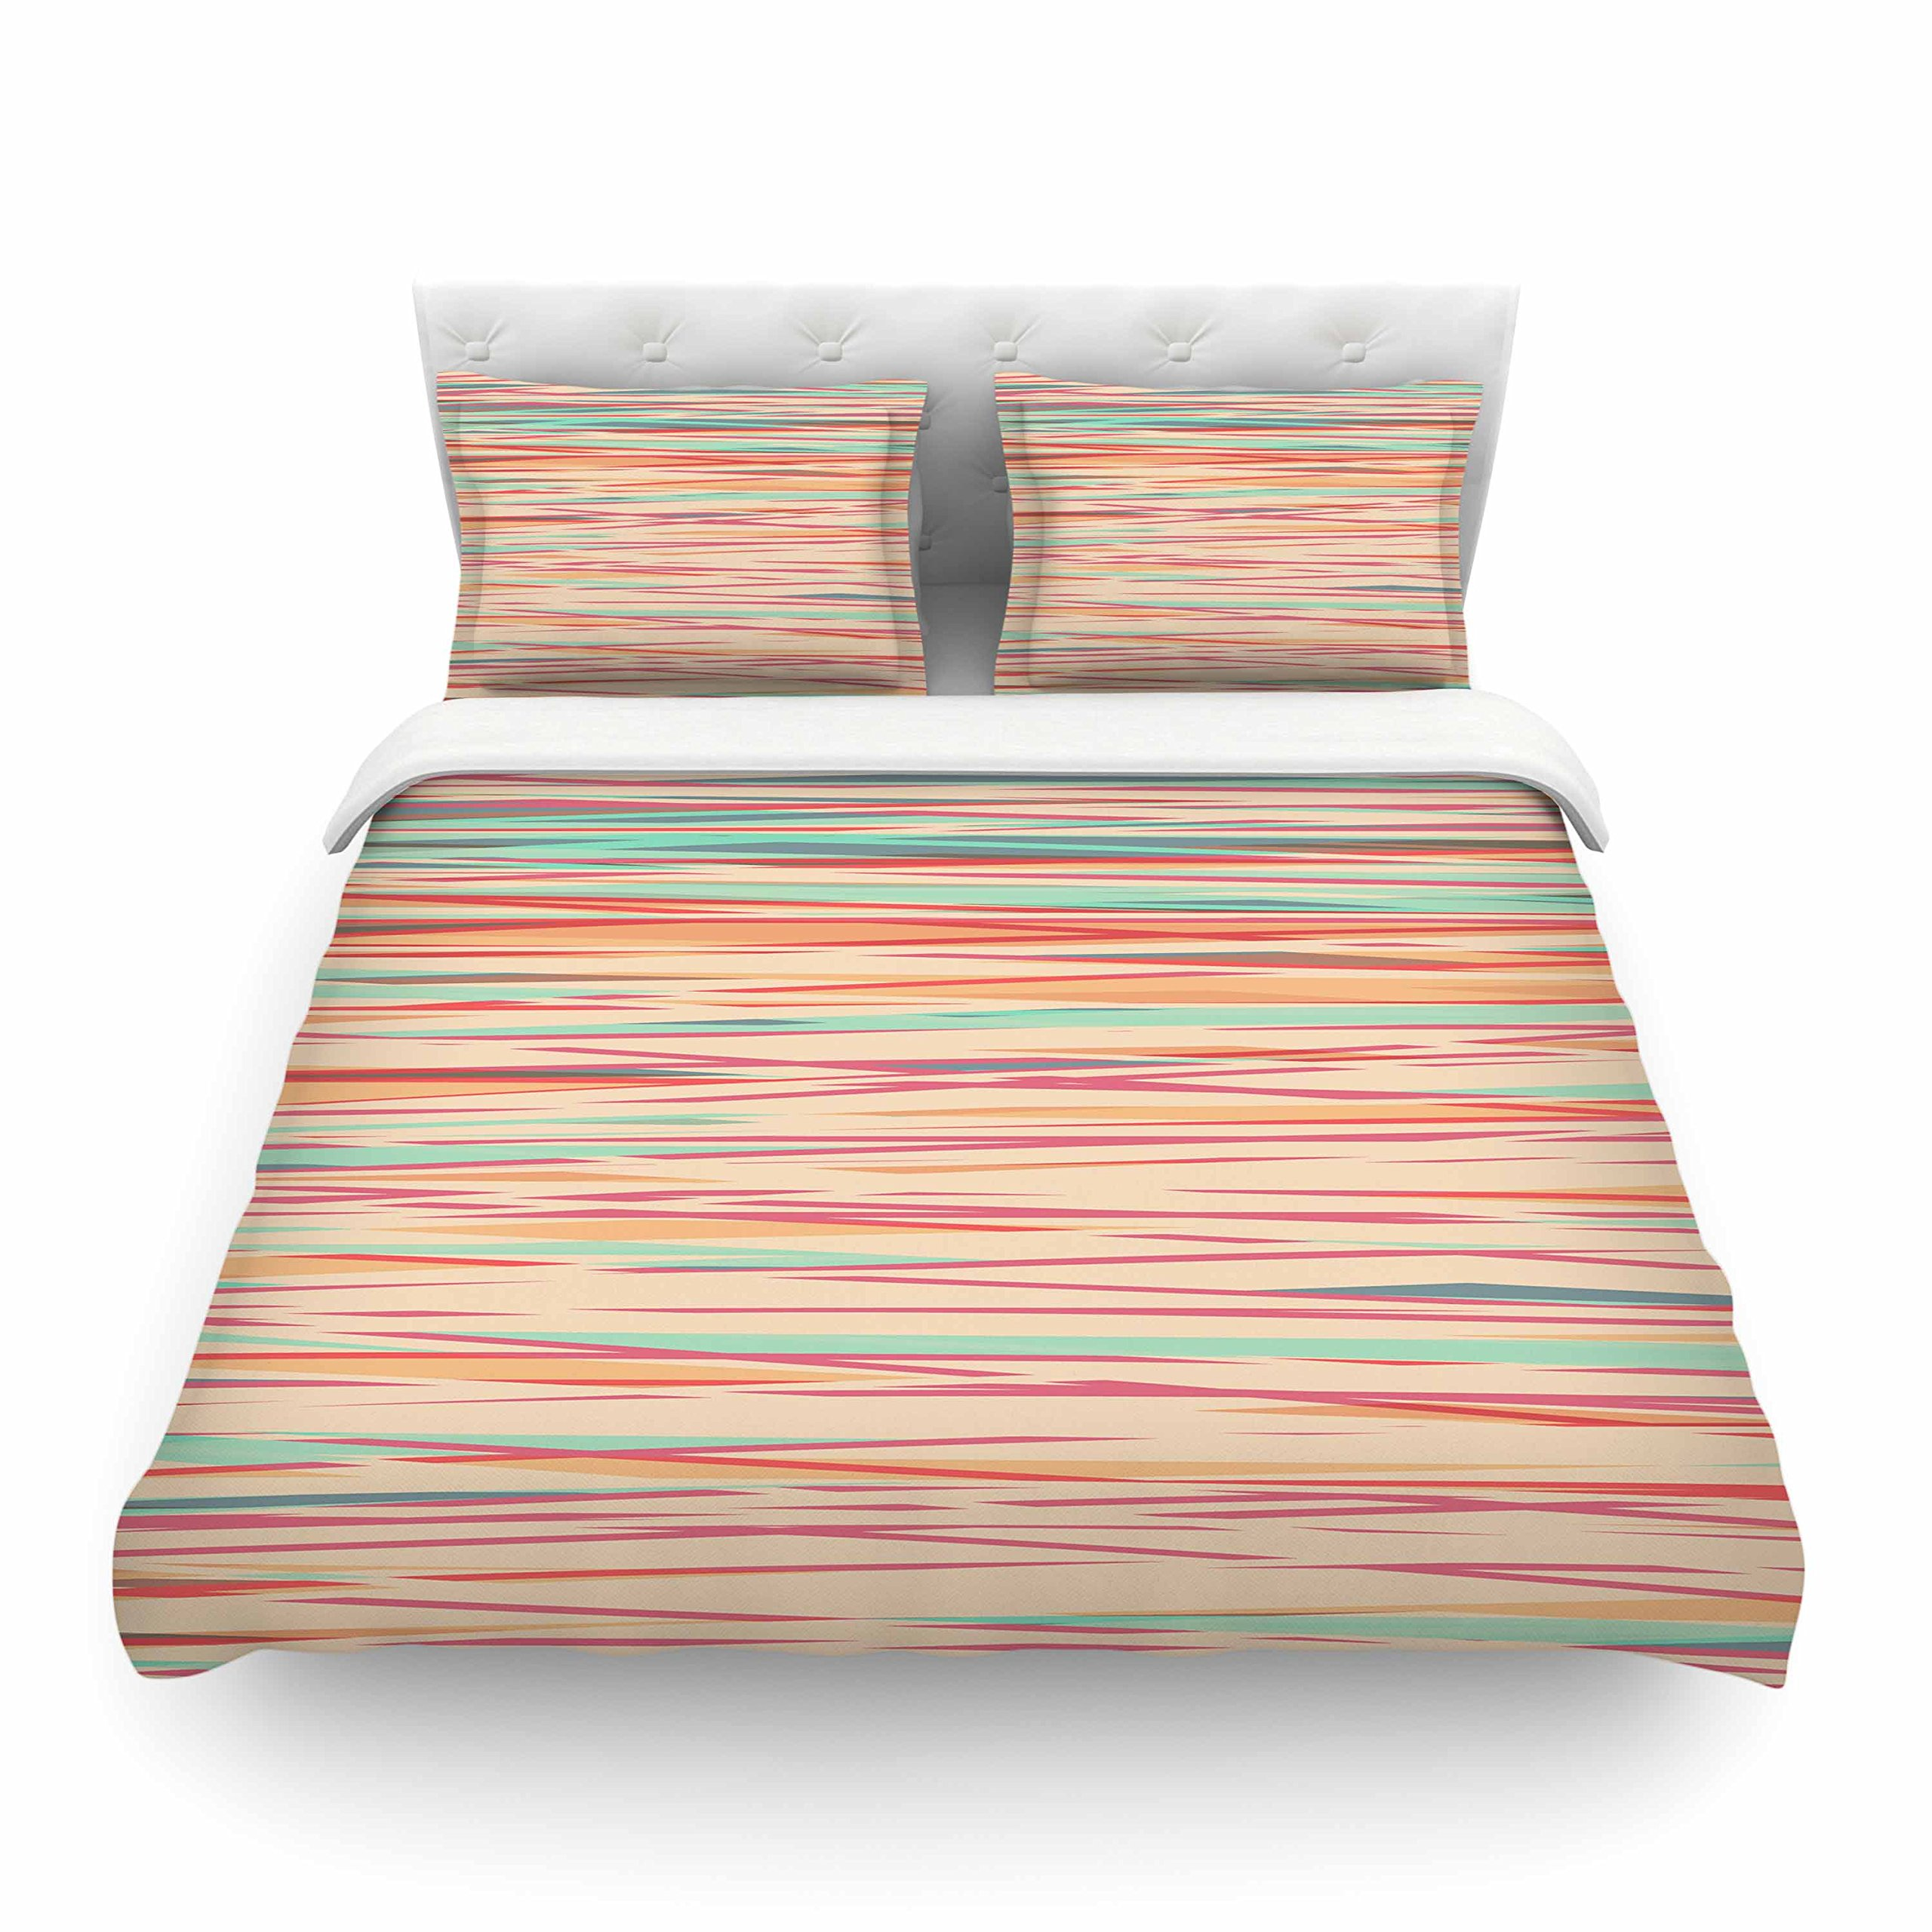 Kess InHouse Michelle Drew ''Stripy Wood Bark'' Orange Red Cotton Queen Duvet Cover, 88 x 88''